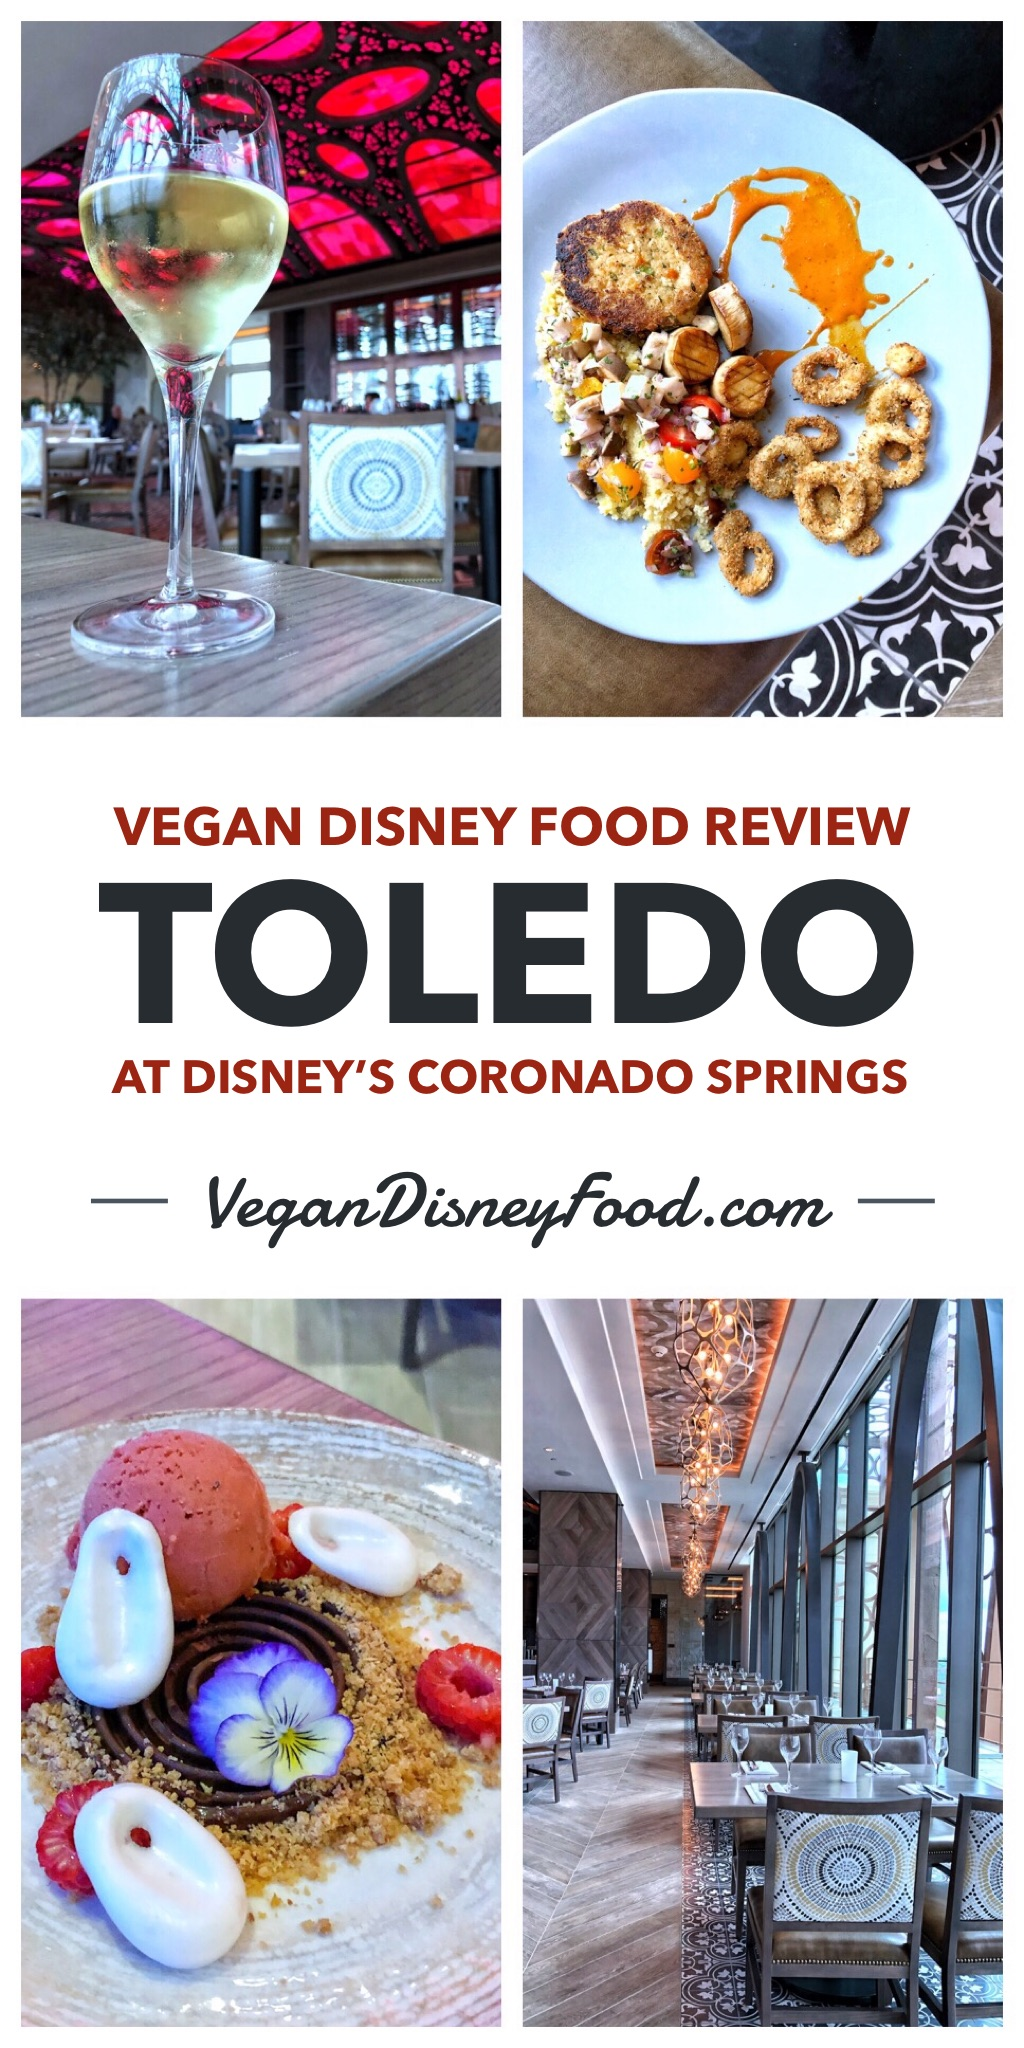 Vegan Disney Food Review: Toledo at Coronado Springs Gran Destino